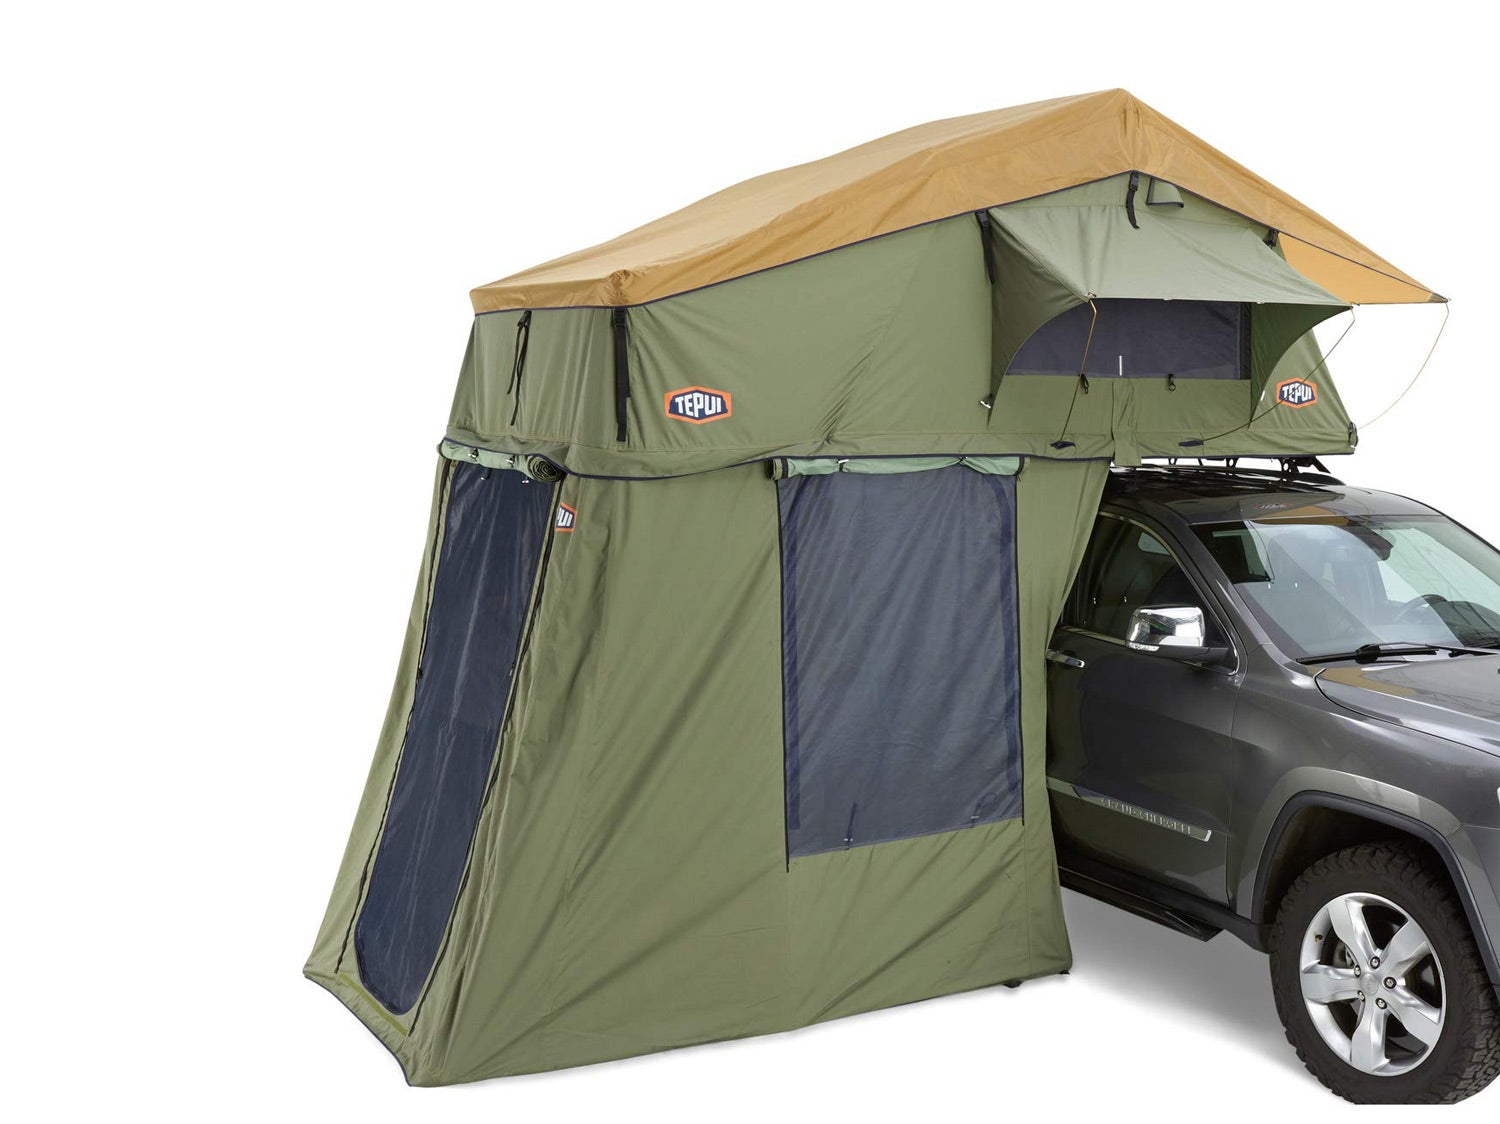 3 Keys to Selecting an Overland Tent